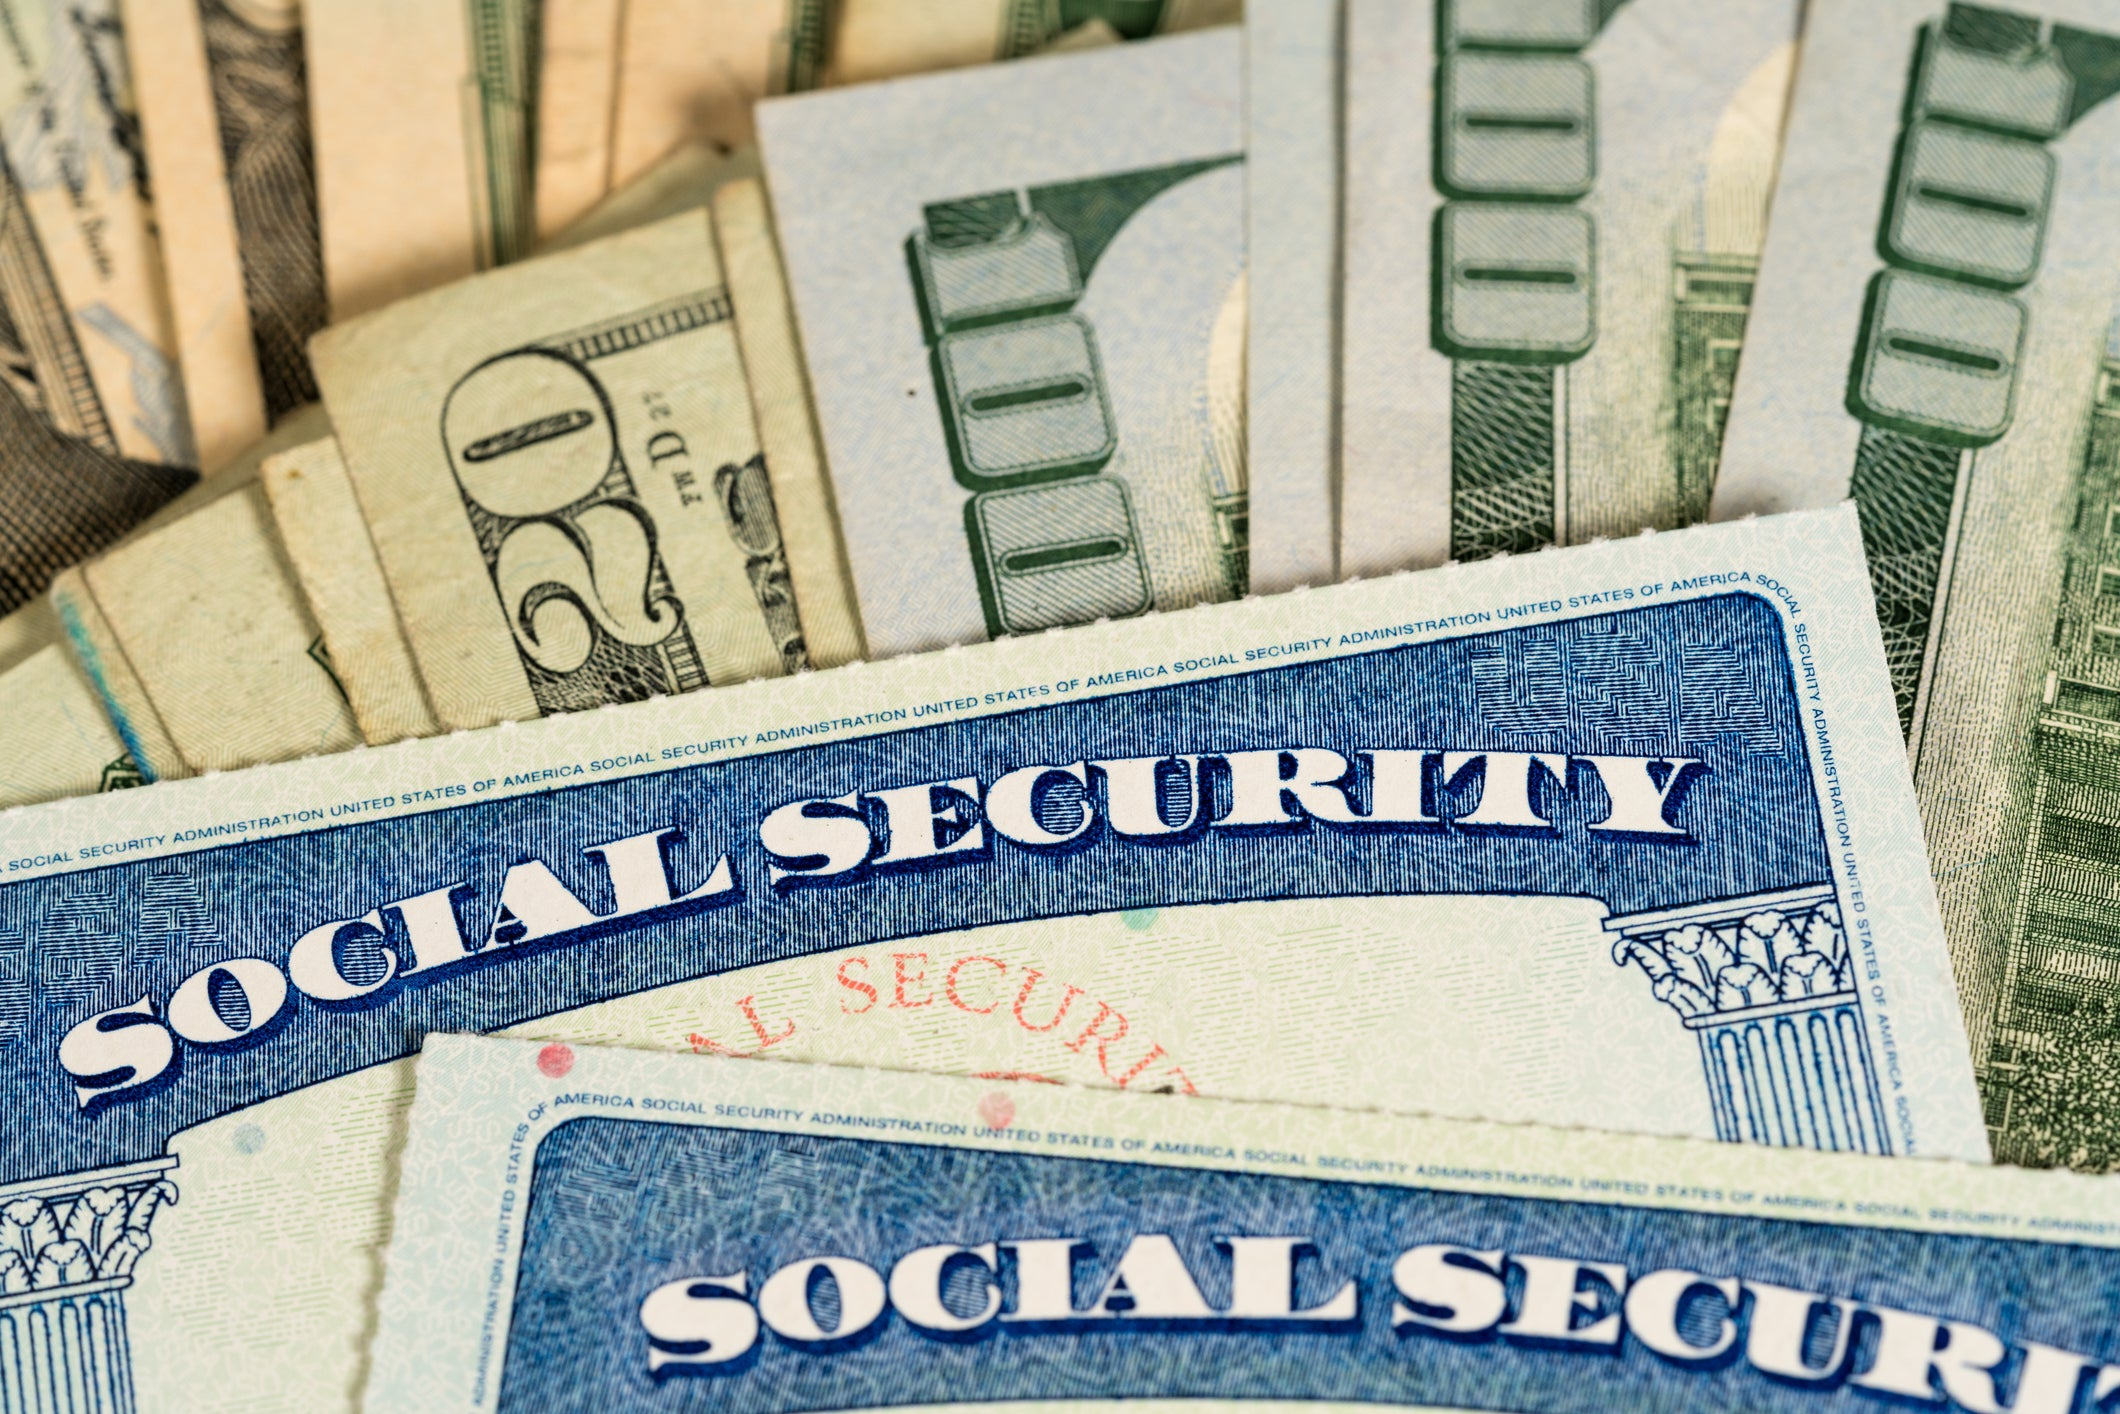 Social Security cards sitting on top of money.